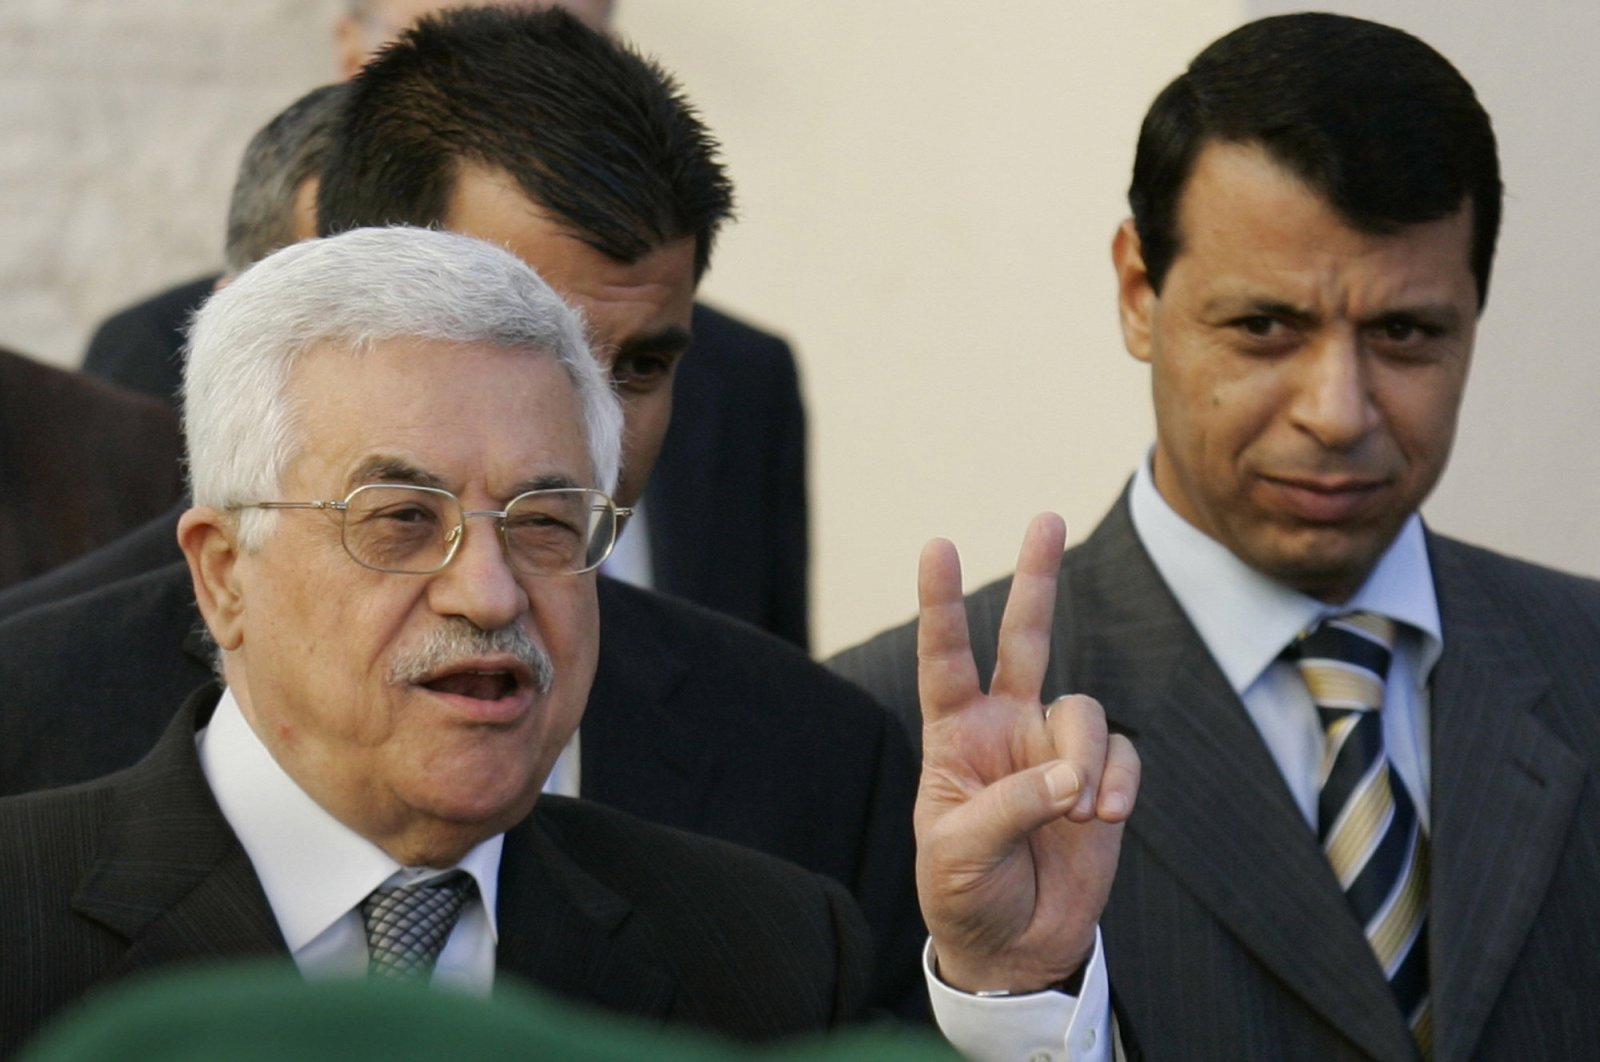 Palestinian Authority President Mahmoud Abbas (L) flashes the V sign as then Fatah official Mohammed Dahlan (R) looks on in the West Bank town of Ramallah, Palestine, Dec. 18, 2006. (AP Photo)